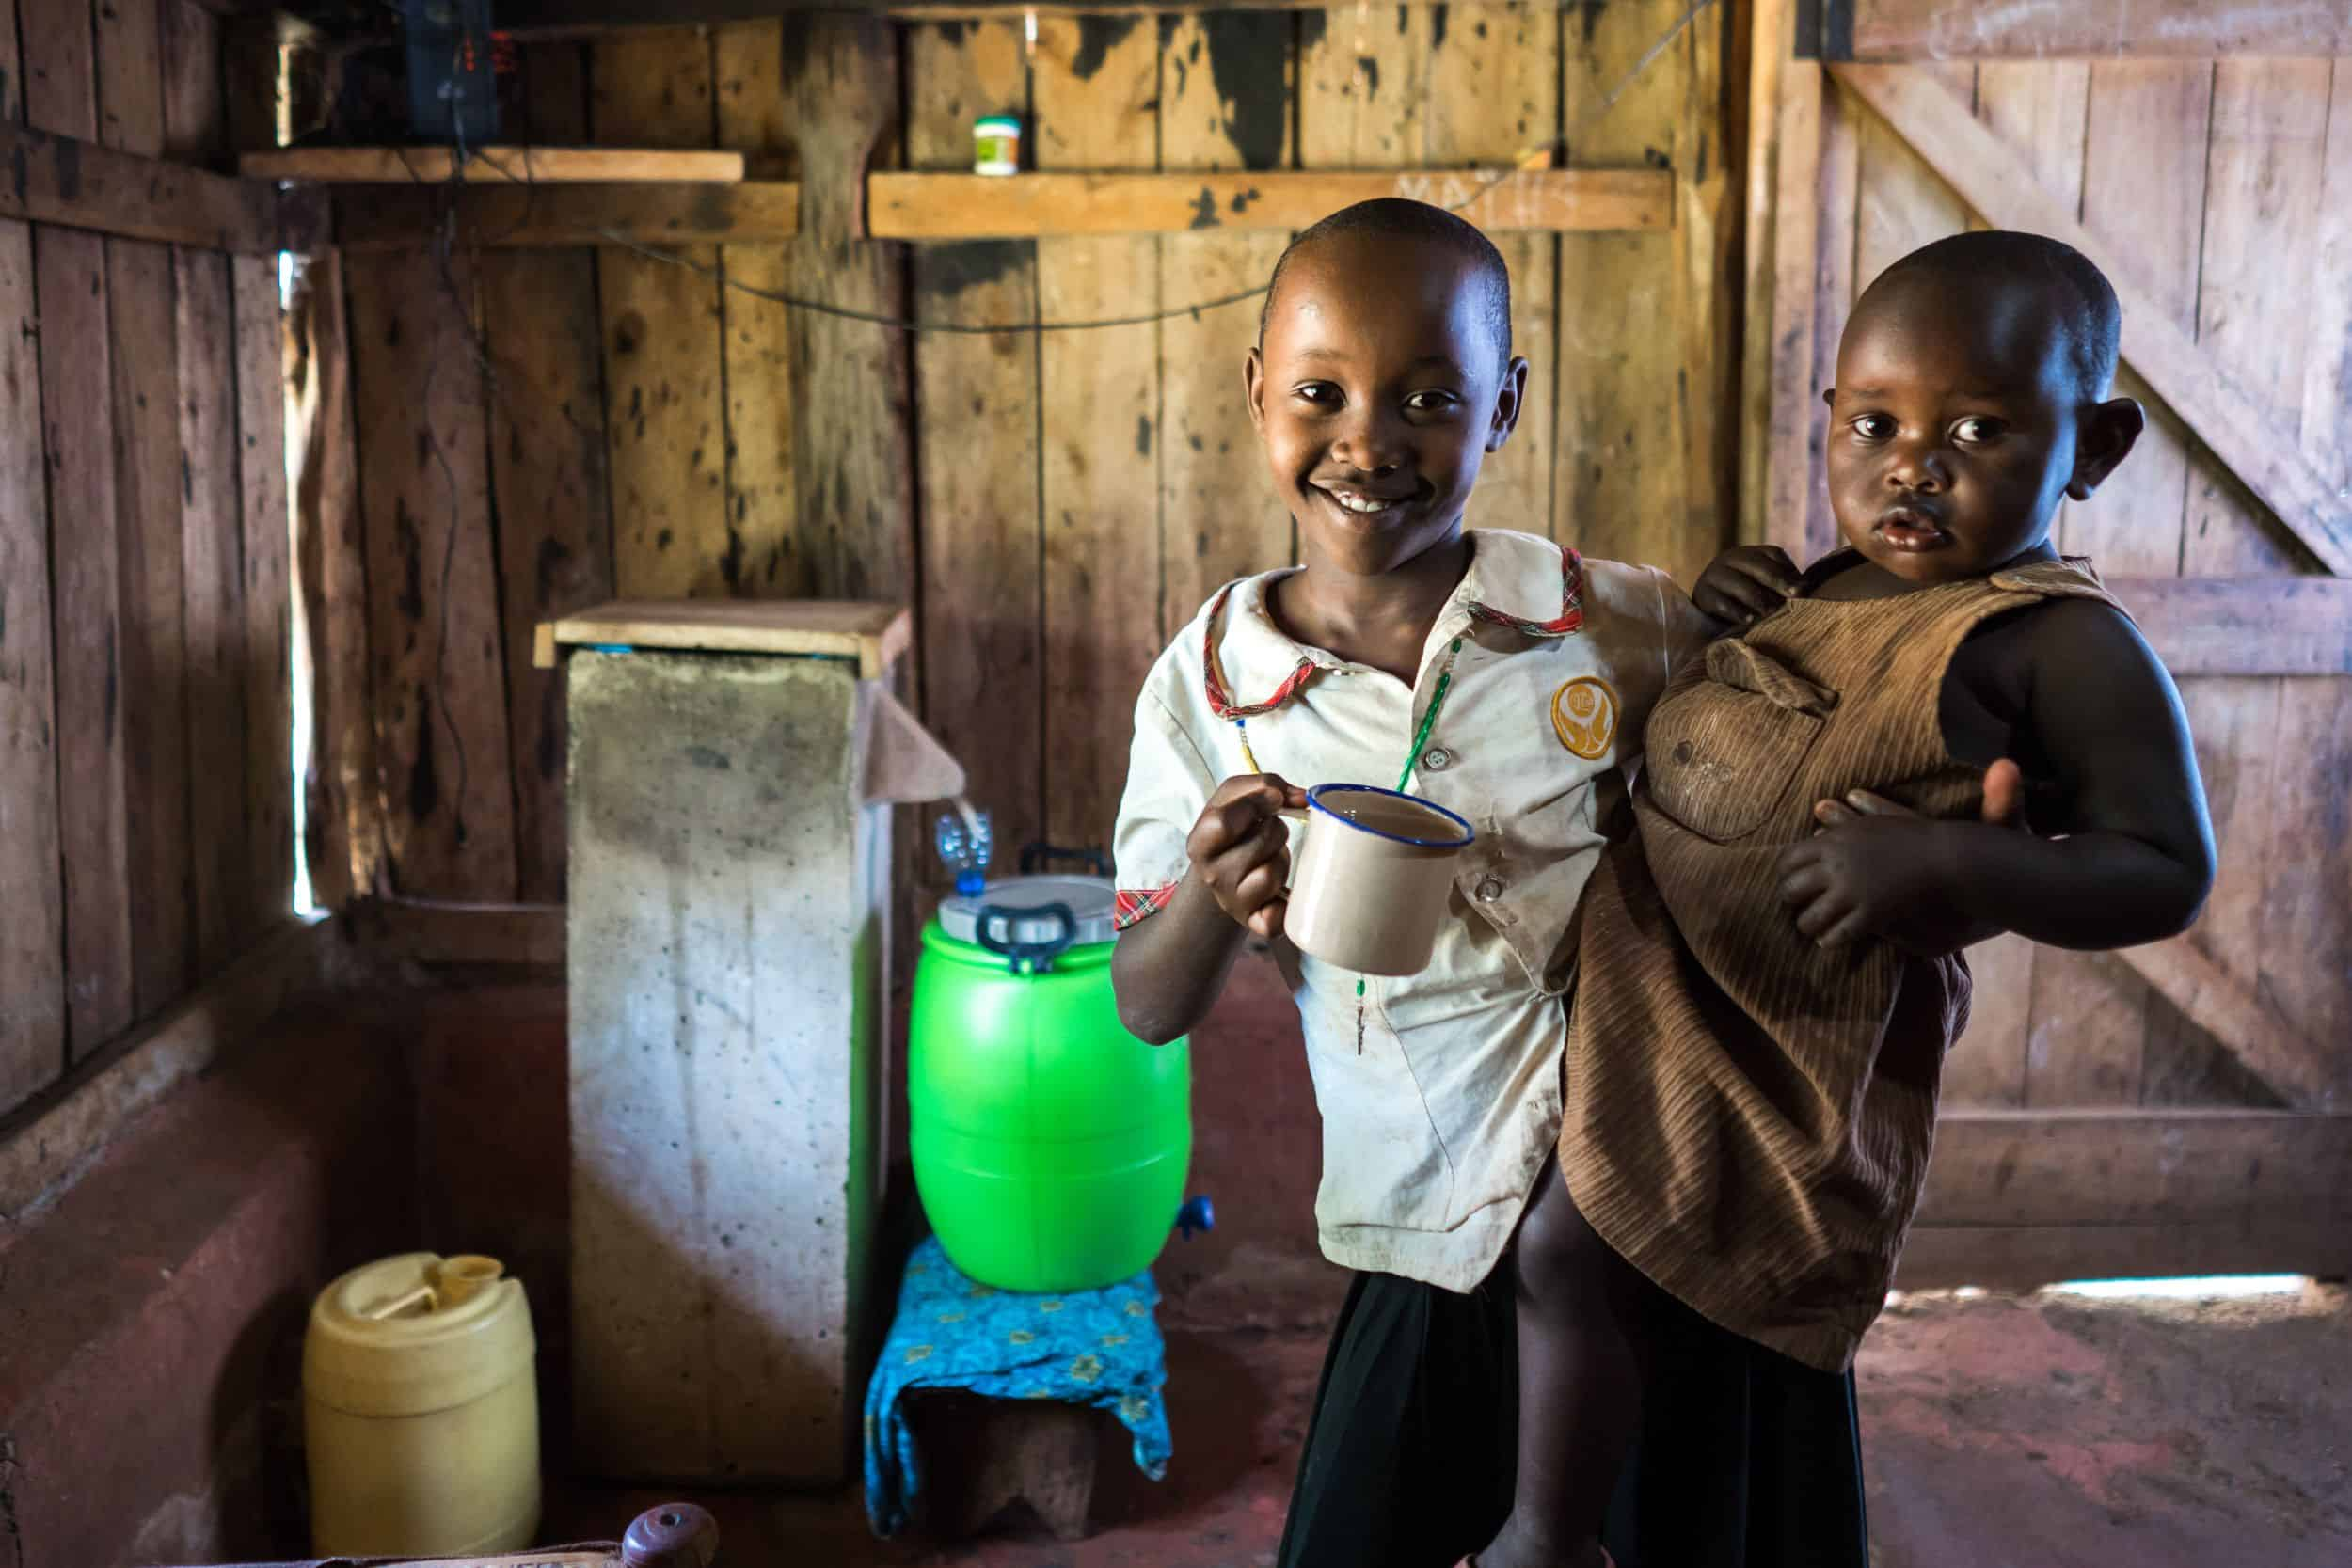 Household water filters help ensure that families can enjoy safe drinking water.